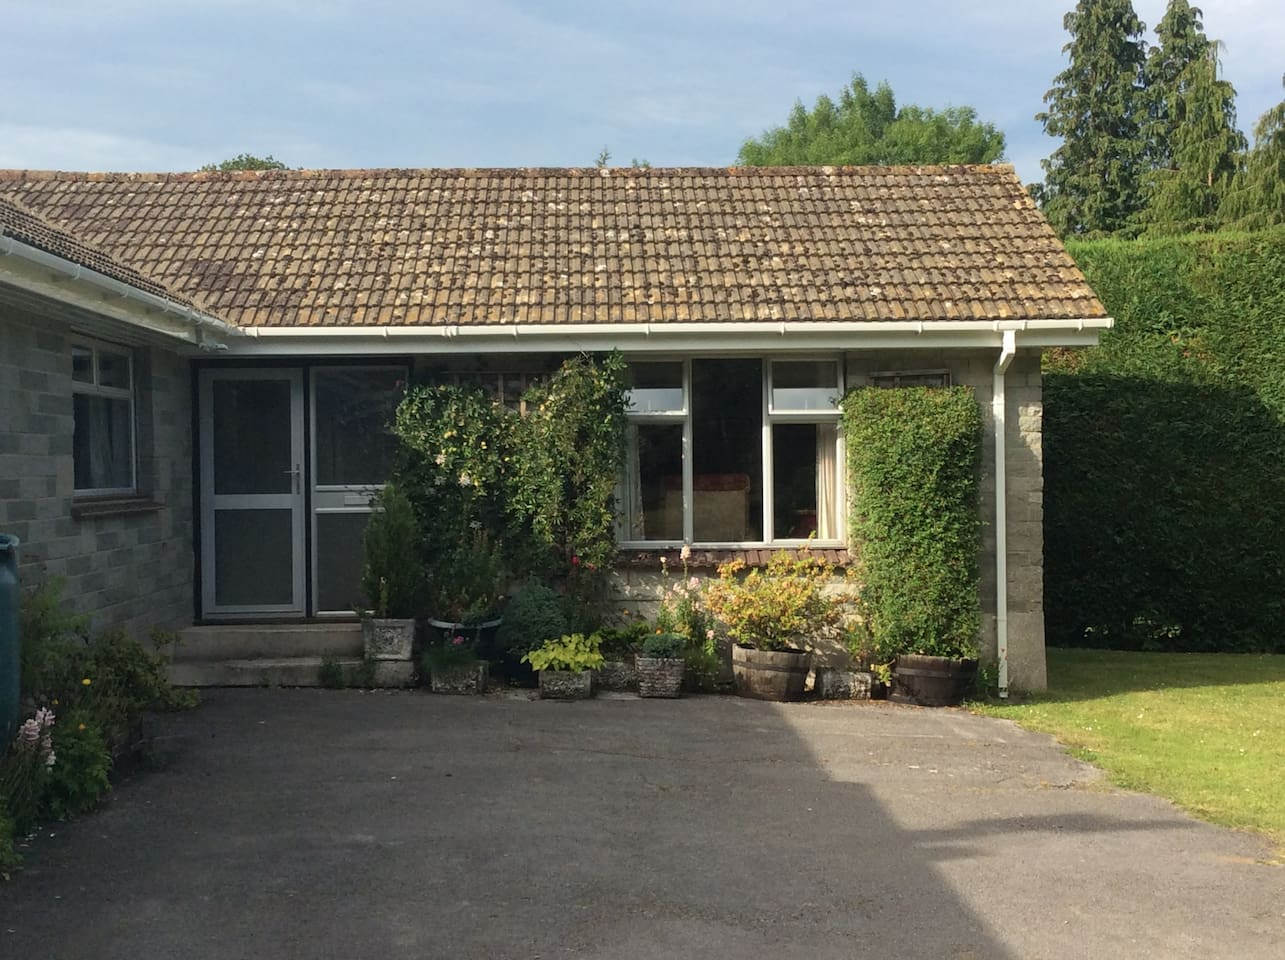 The one bedroom annex (plus sofa bed) stands in the beautiful grounds of Dartmoor National Park.  The spacious grounds offer privacy from the world yet is only a few minutes drive from the quaint stannary town of Ashburton.